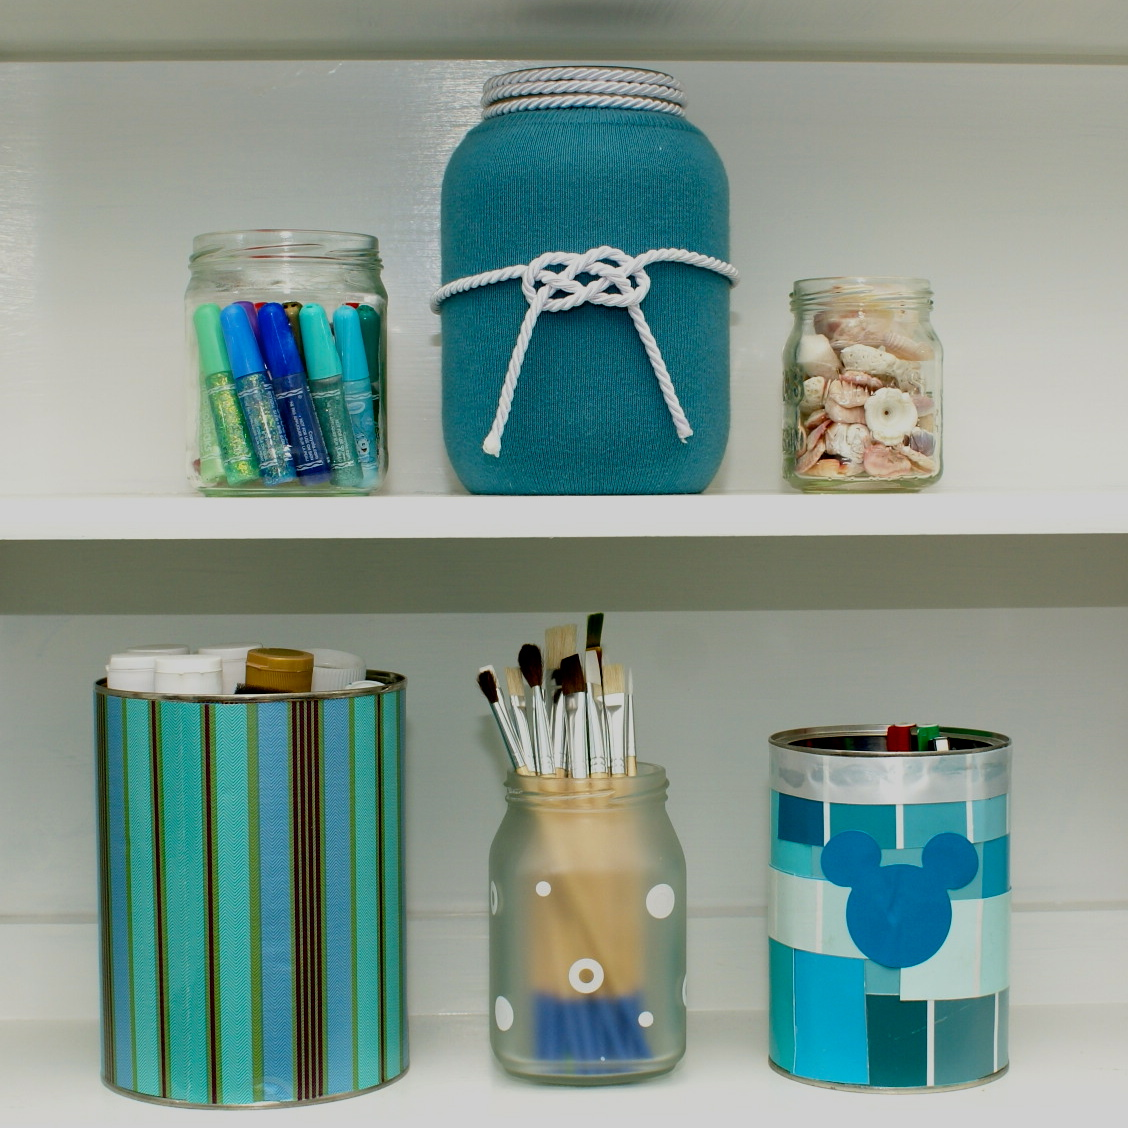 What To Put In Mason Jars For Decoration: The Cozy Condo: Decorate Mason Jars And Coffee Cans